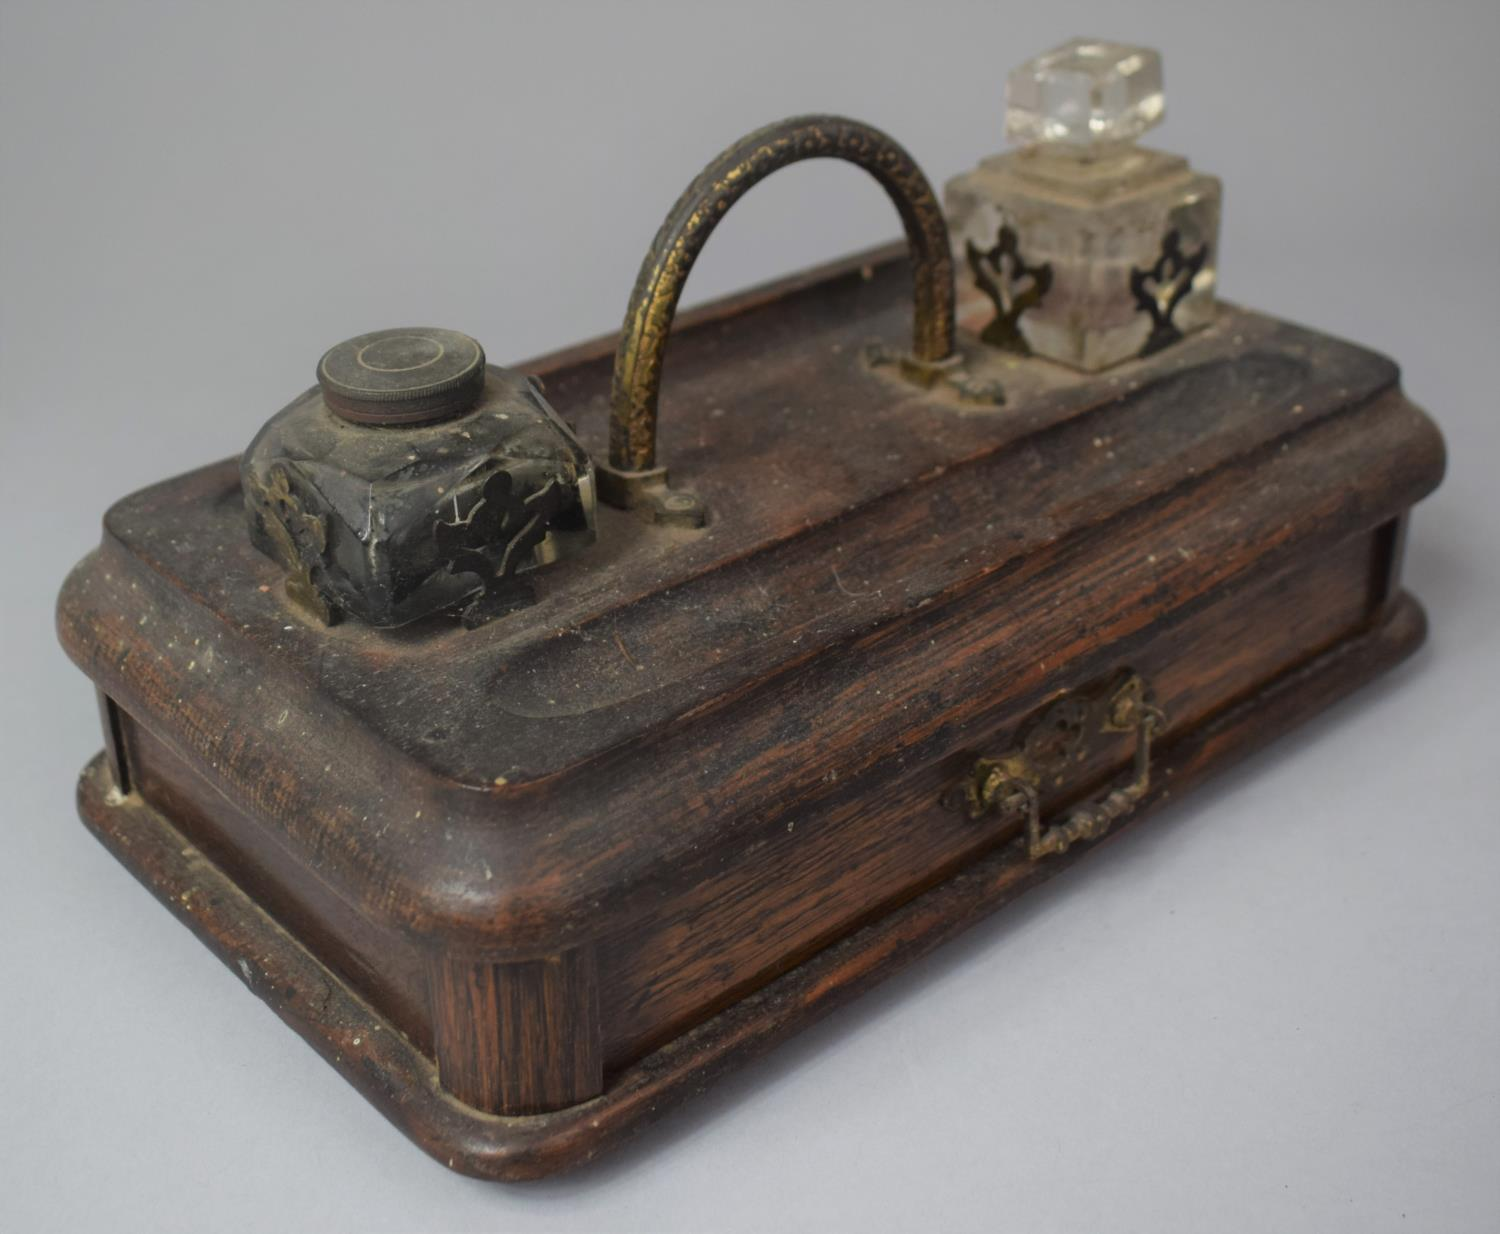 A Late Victorian Desktop Penrest and Inkstand with Two Ink Bottles and Base Drawer, 25cm Wide - Image 2 of 3